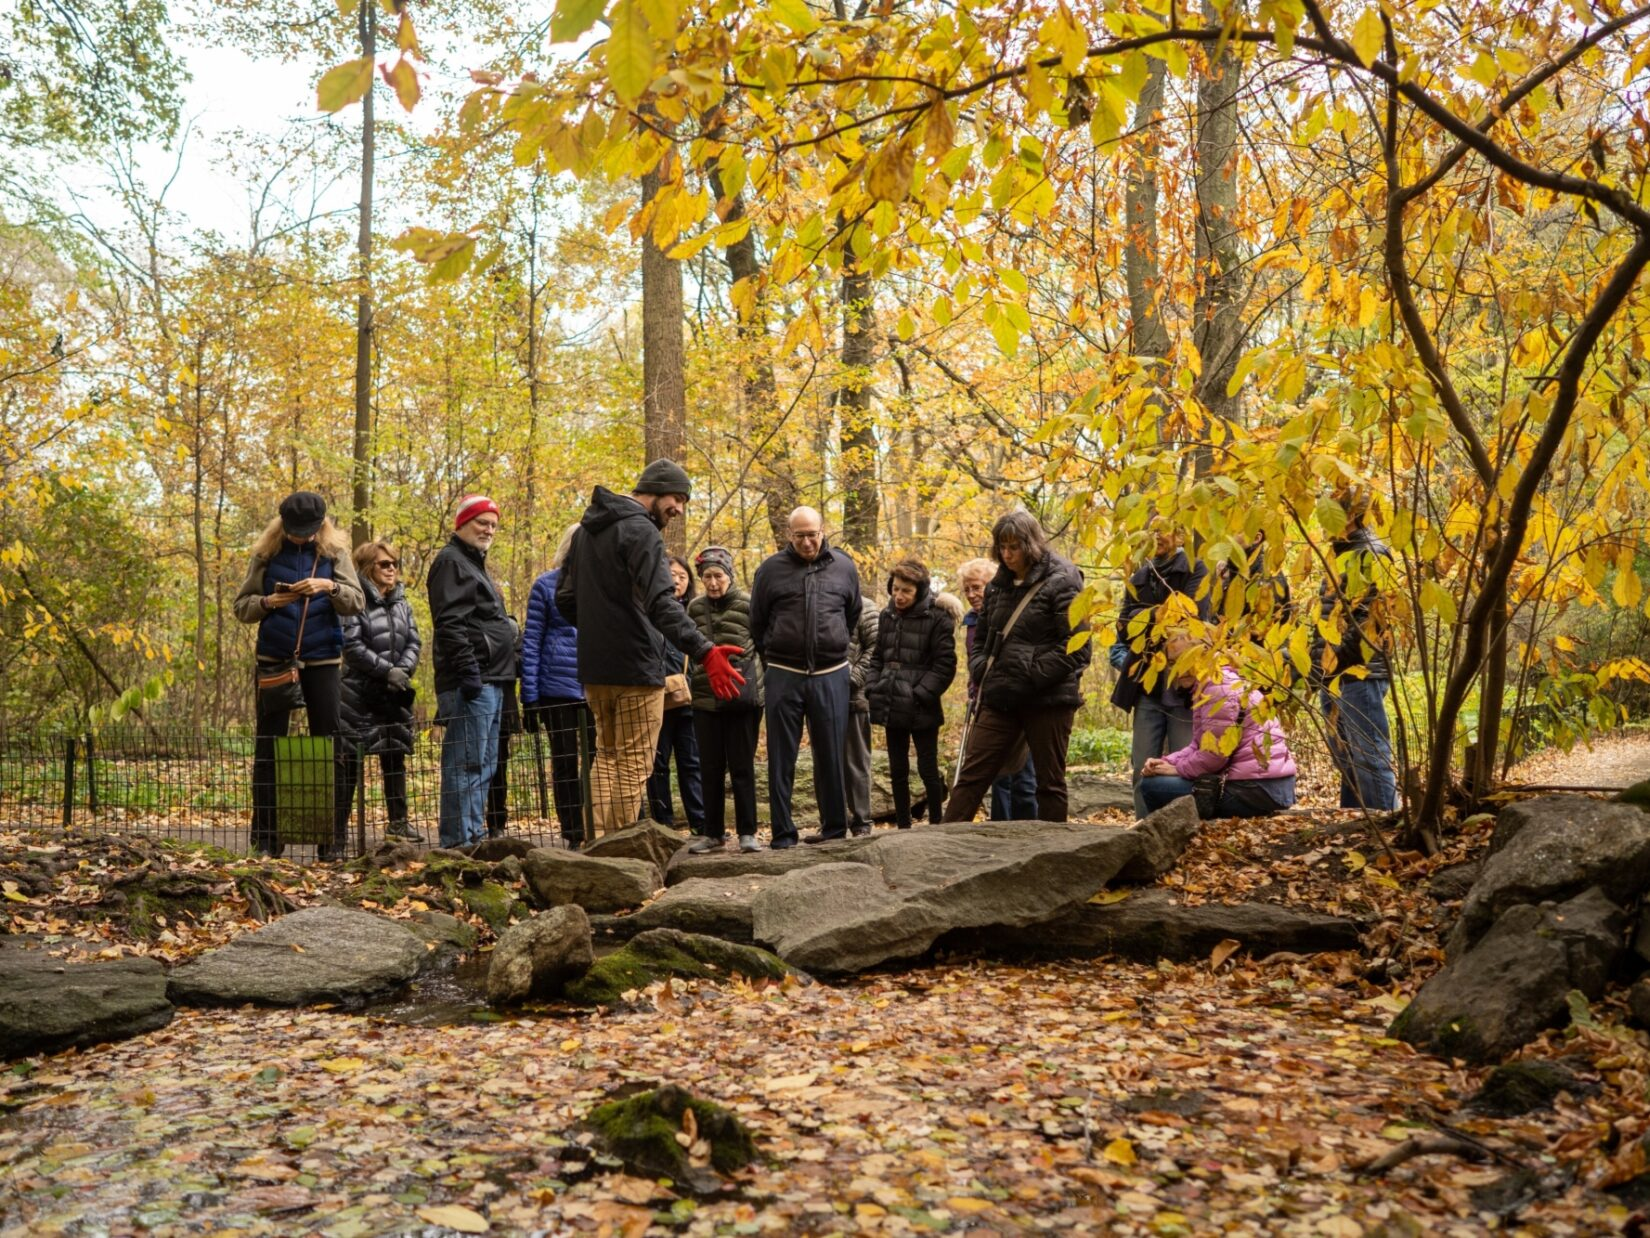 A tour group pauses in the Ramble to examine the topography and enjoy the late-autumn color of the leaves